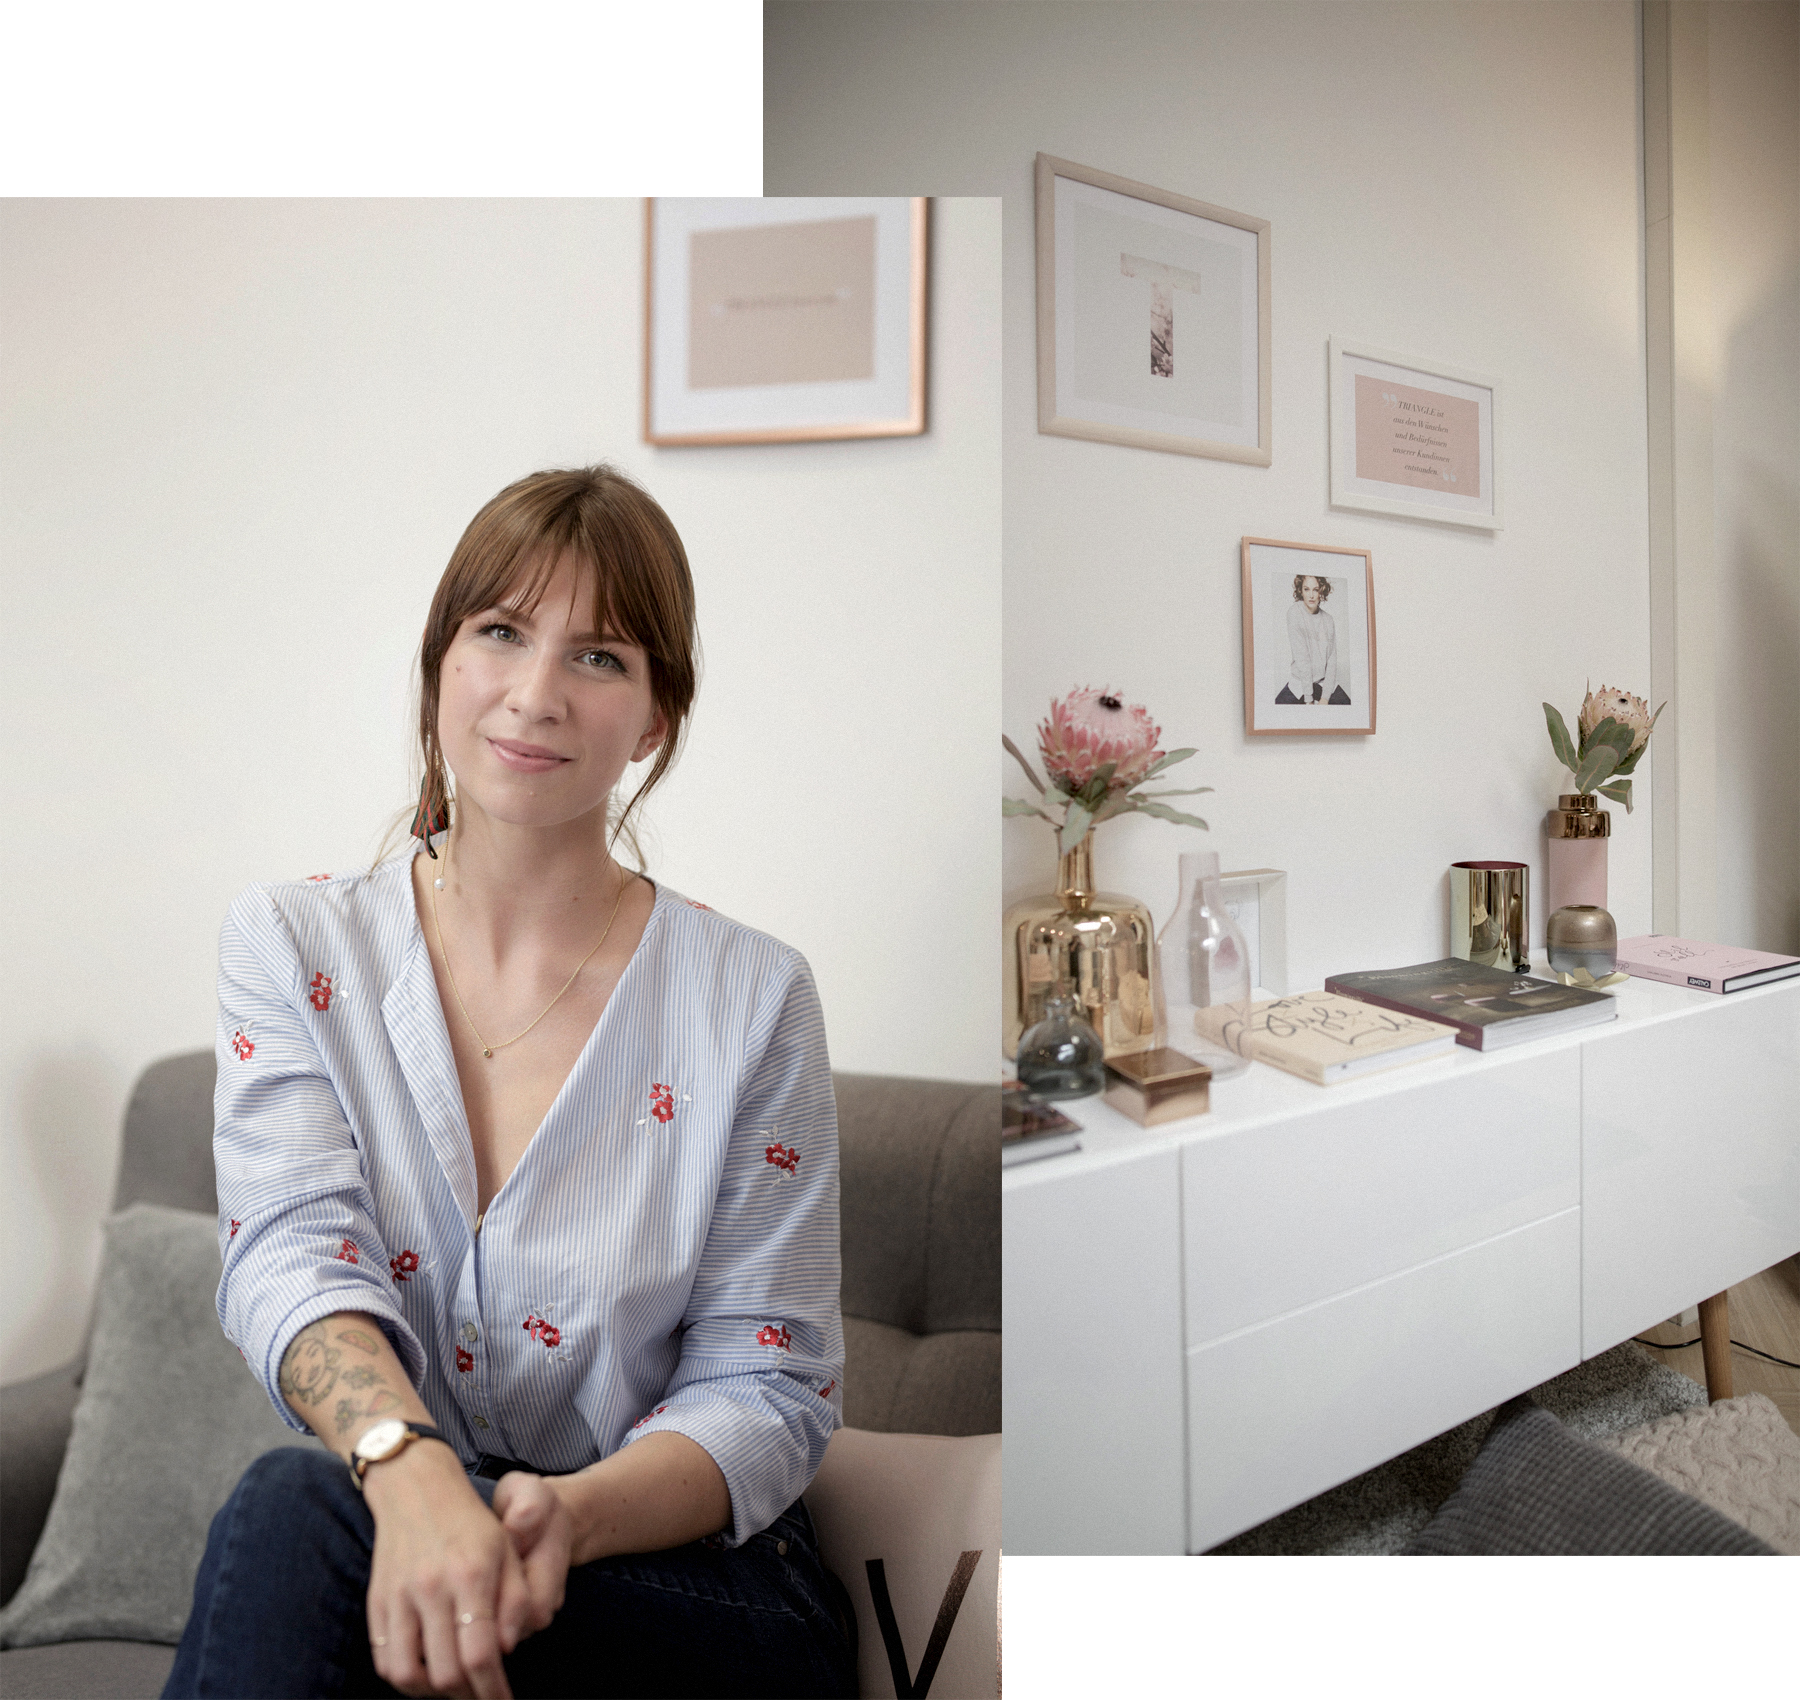 triangle interview business for fashion girls talk fashionblogger rosegold grey minimal scandi style interior brunette bangs cute denim style baby blue cats & dogs modeblog  düsseldorf germany styleblogger outfitblogger ricarda schernus max bechmann 6